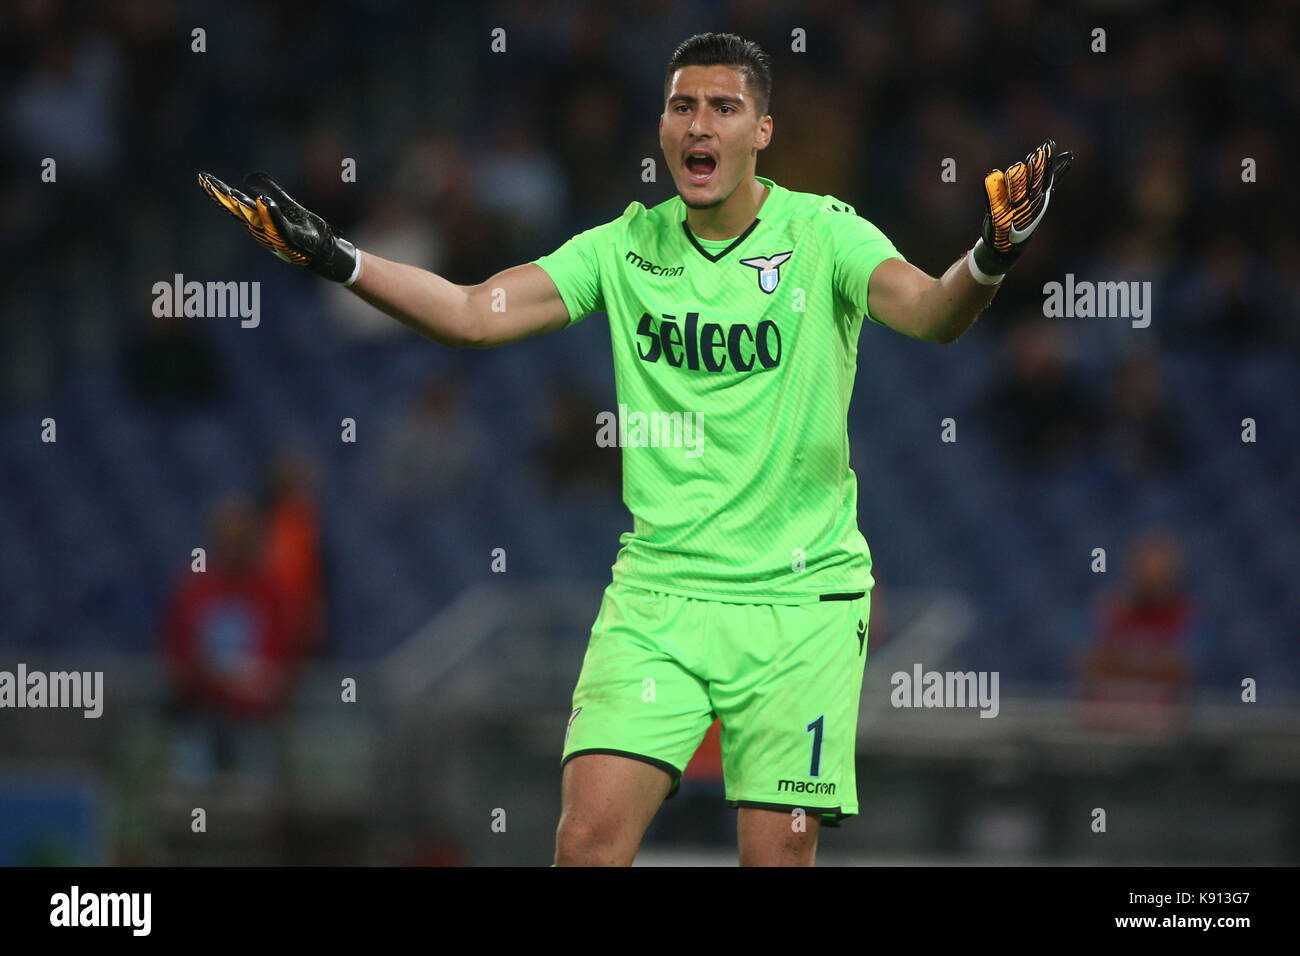 Italy, Rome, September 20, 2017:Strakosha in action during the football match Serie A Lazio vs Napoli in Olimpic - Stock Image